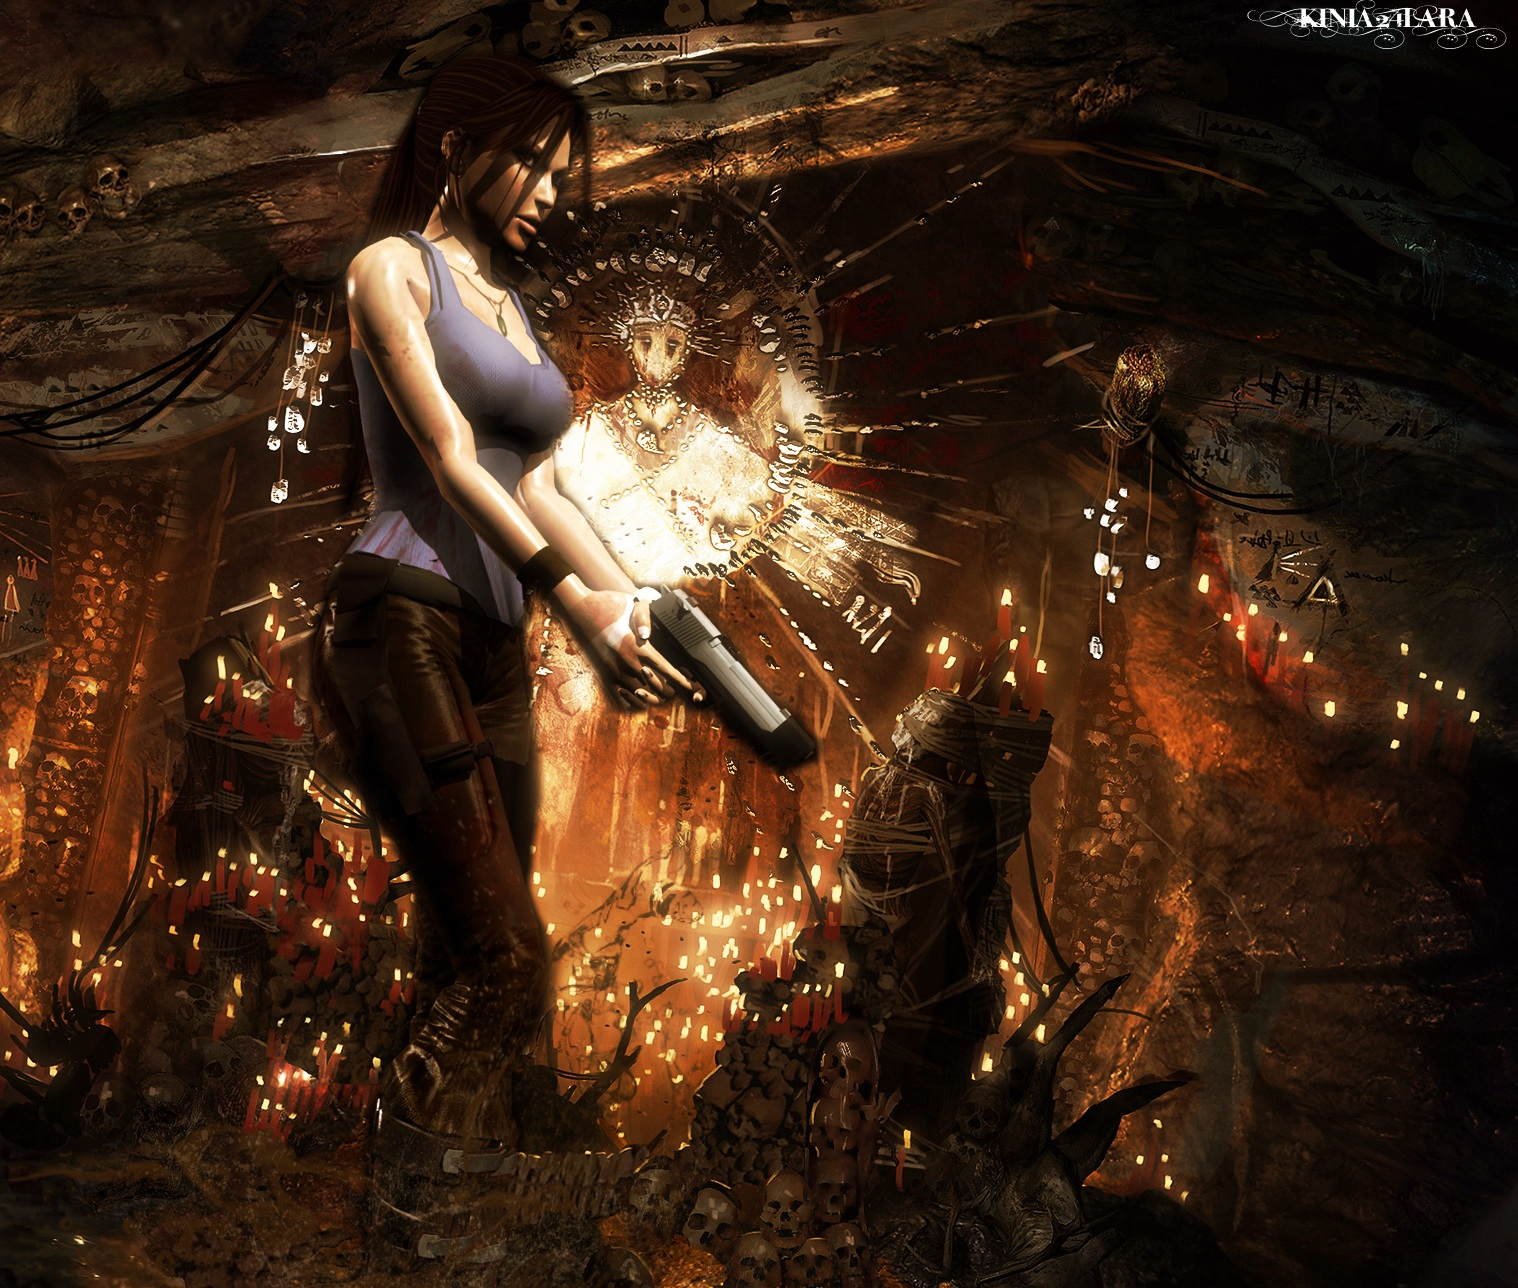 Tomb Raider 9 Render... By Kinia24Lara On DeviantArt